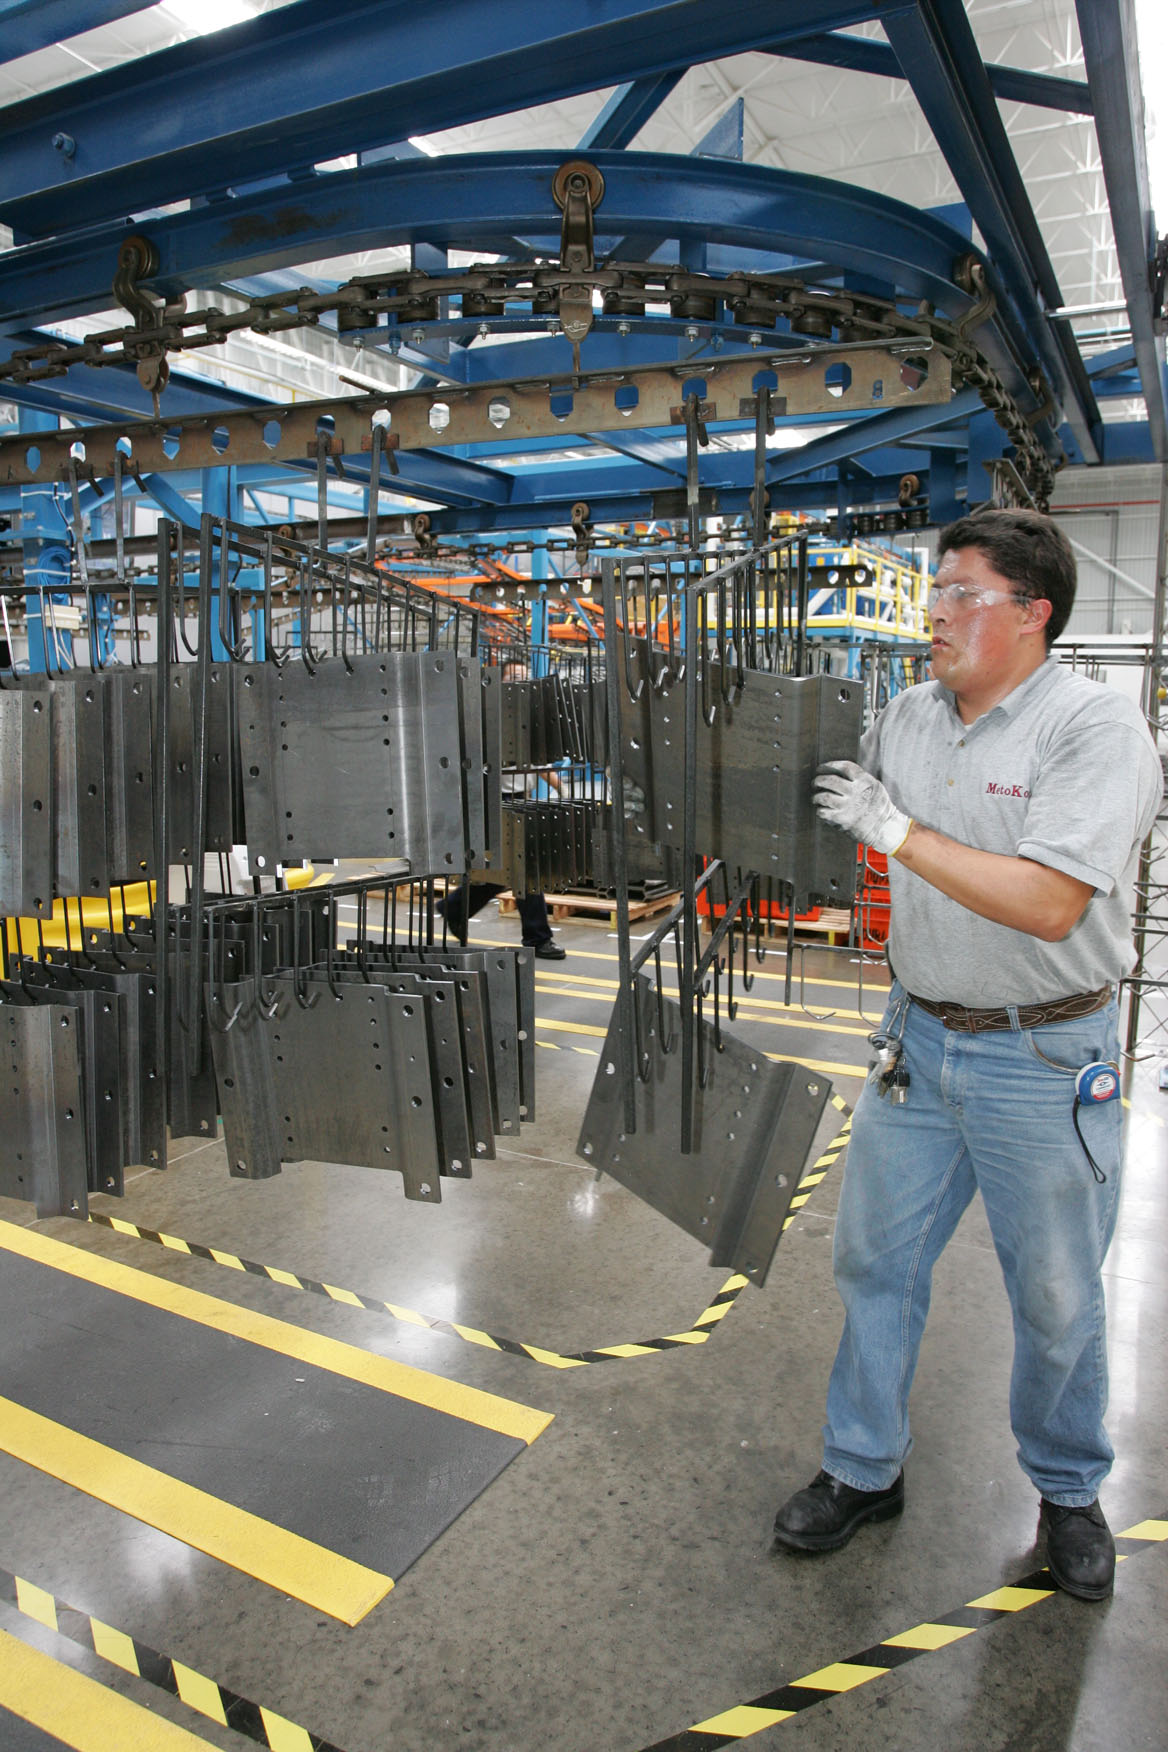 Metal Finishing Leader MetoKote Opens Eighth Facility in